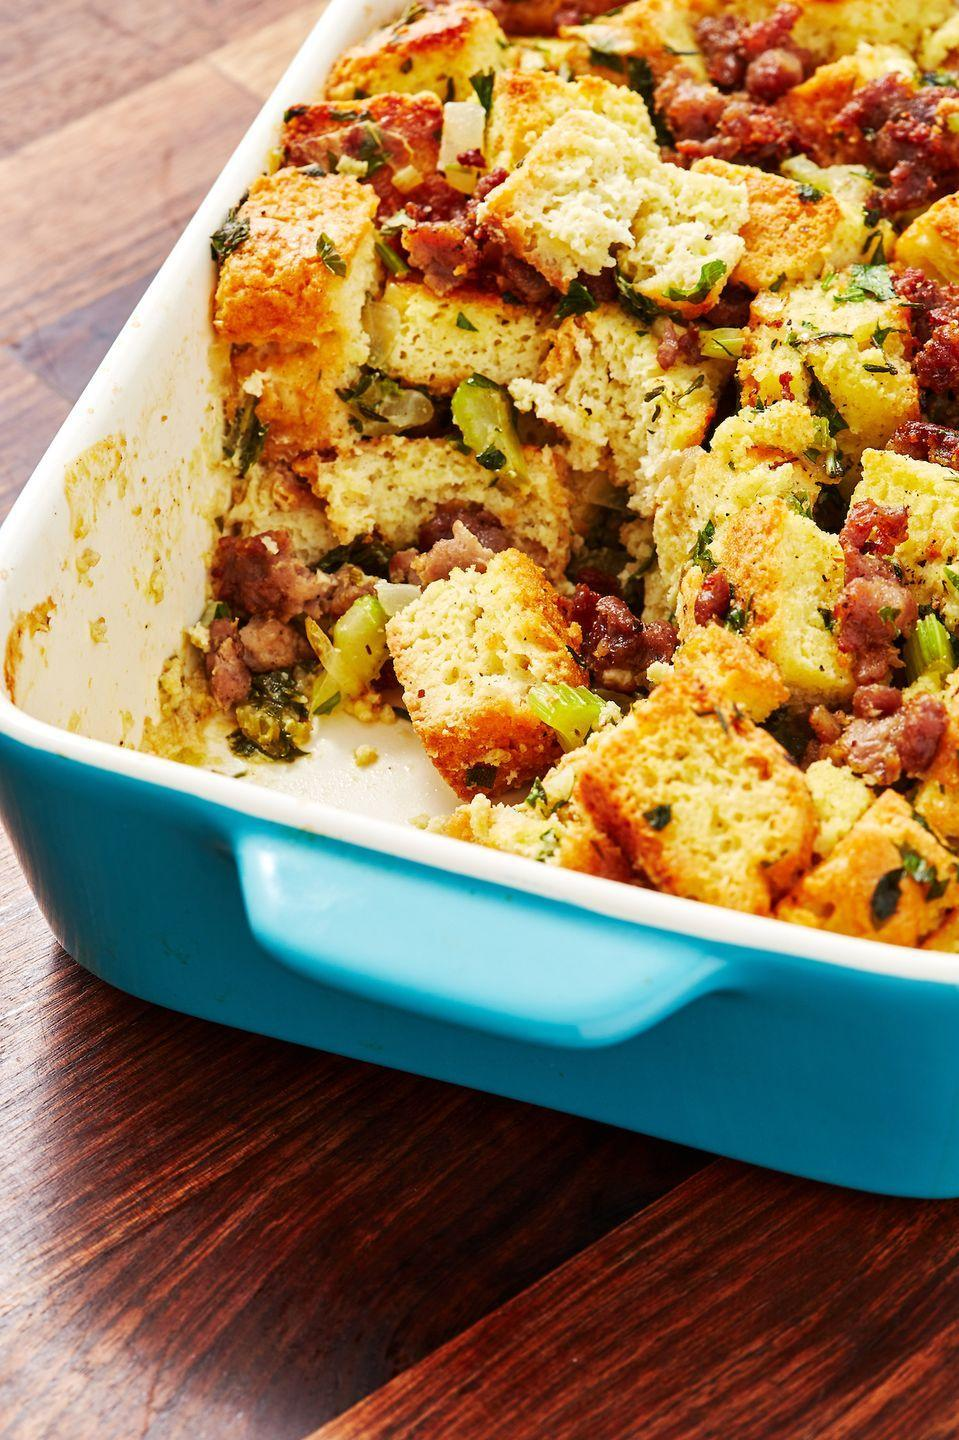 """<p>Even your keto relative will be stuffed.</p><p>Get the recipe from <a href=""""https://www.delish.com/holiday-recipes/thanksgiving/a29024474/keto-stuffing-recipe/"""" rel=""""nofollow noopener"""" target=""""_blank"""" data-ylk=""""slk:Delish"""" class=""""link rapid-noclick-resp"""">Delish</a>.</p>"""